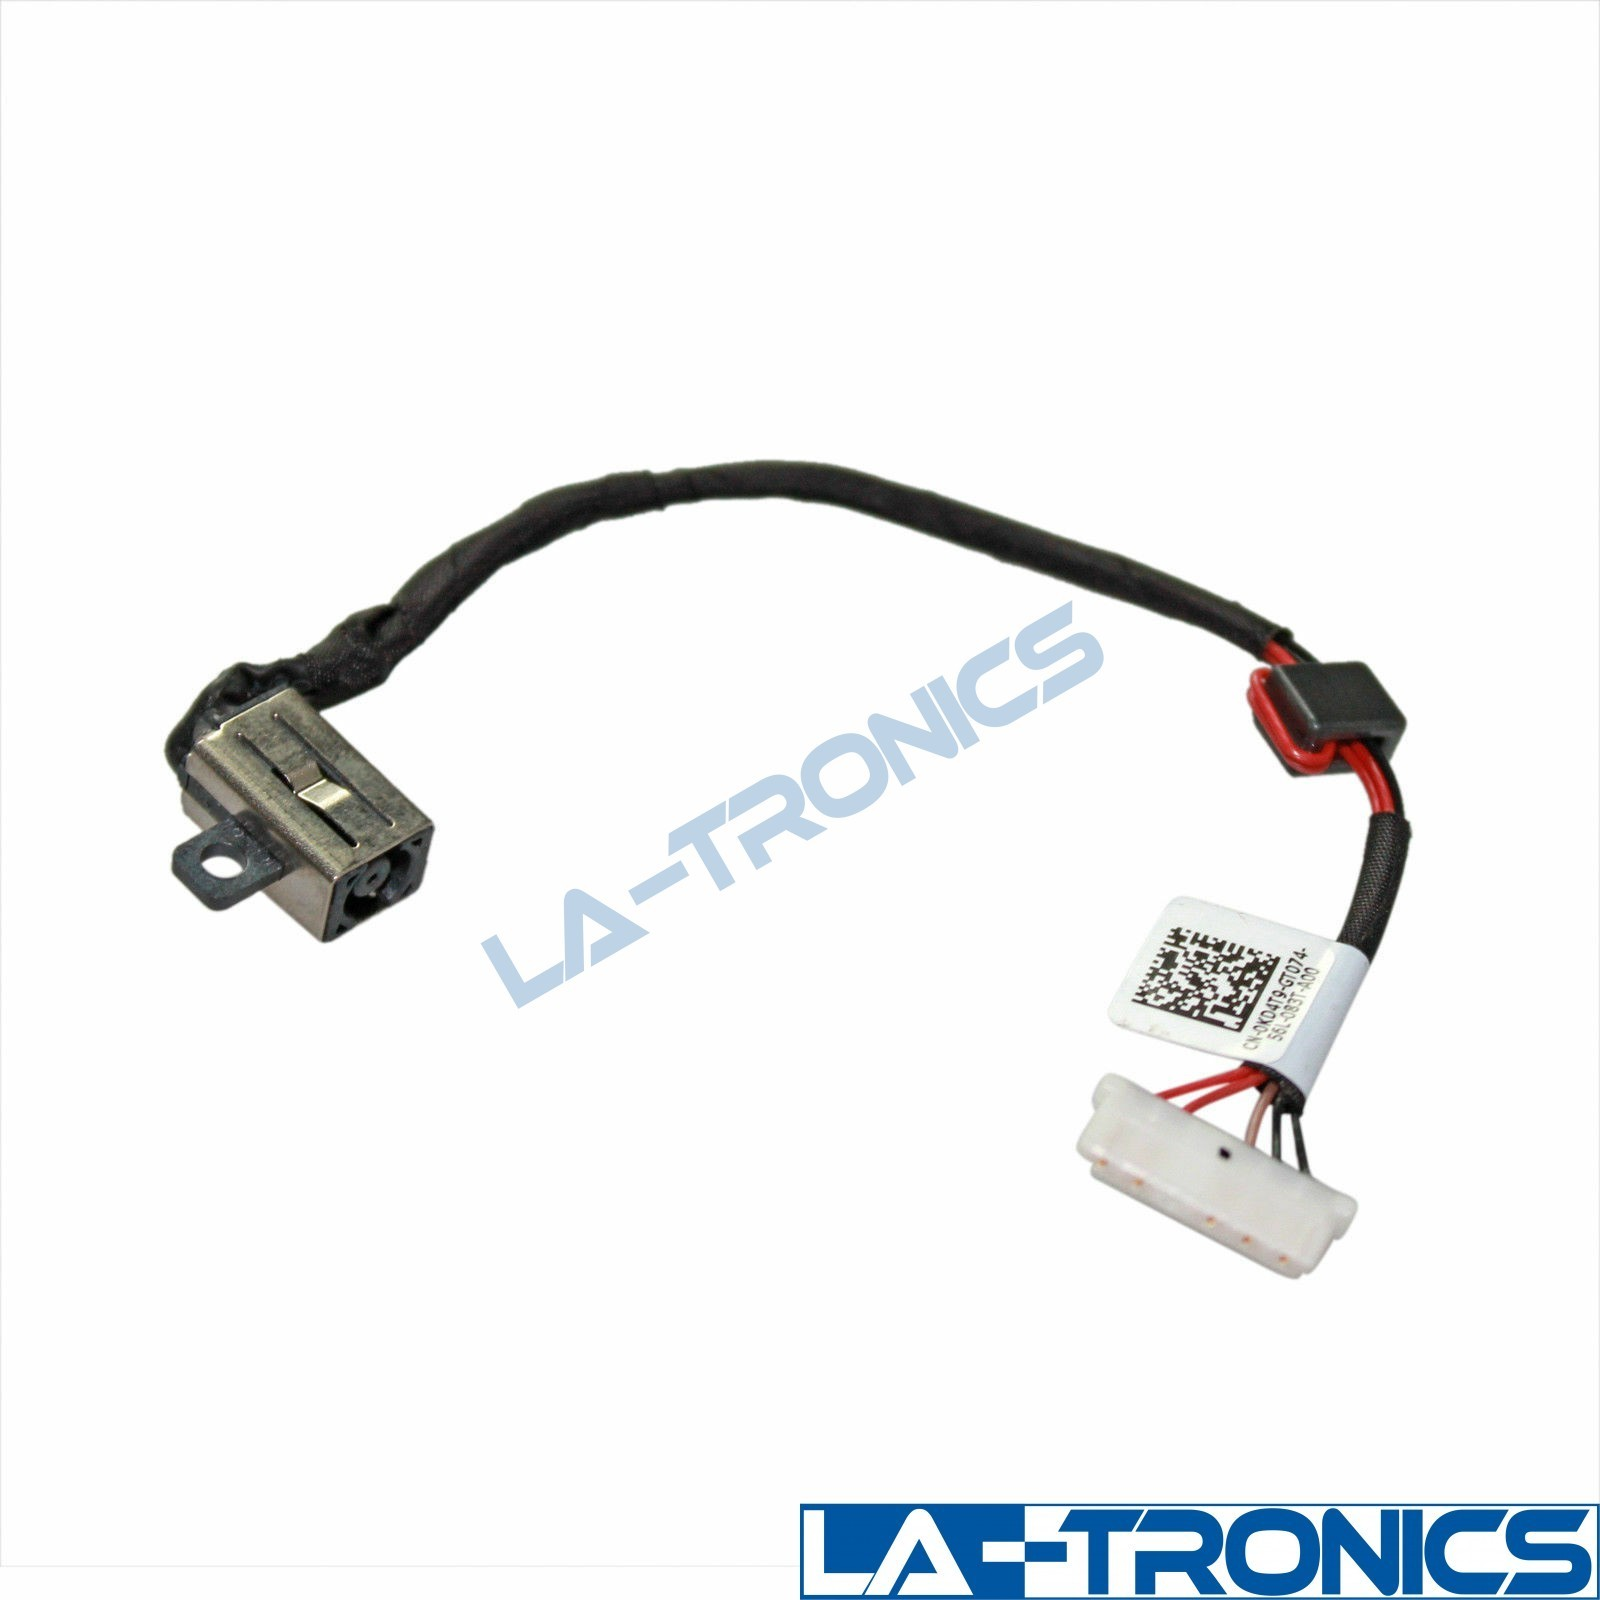 Dell Inspiron 14 5458 DC POWER JACK CABLE HARNESS DC30100UD00 30C53 0KD4T9